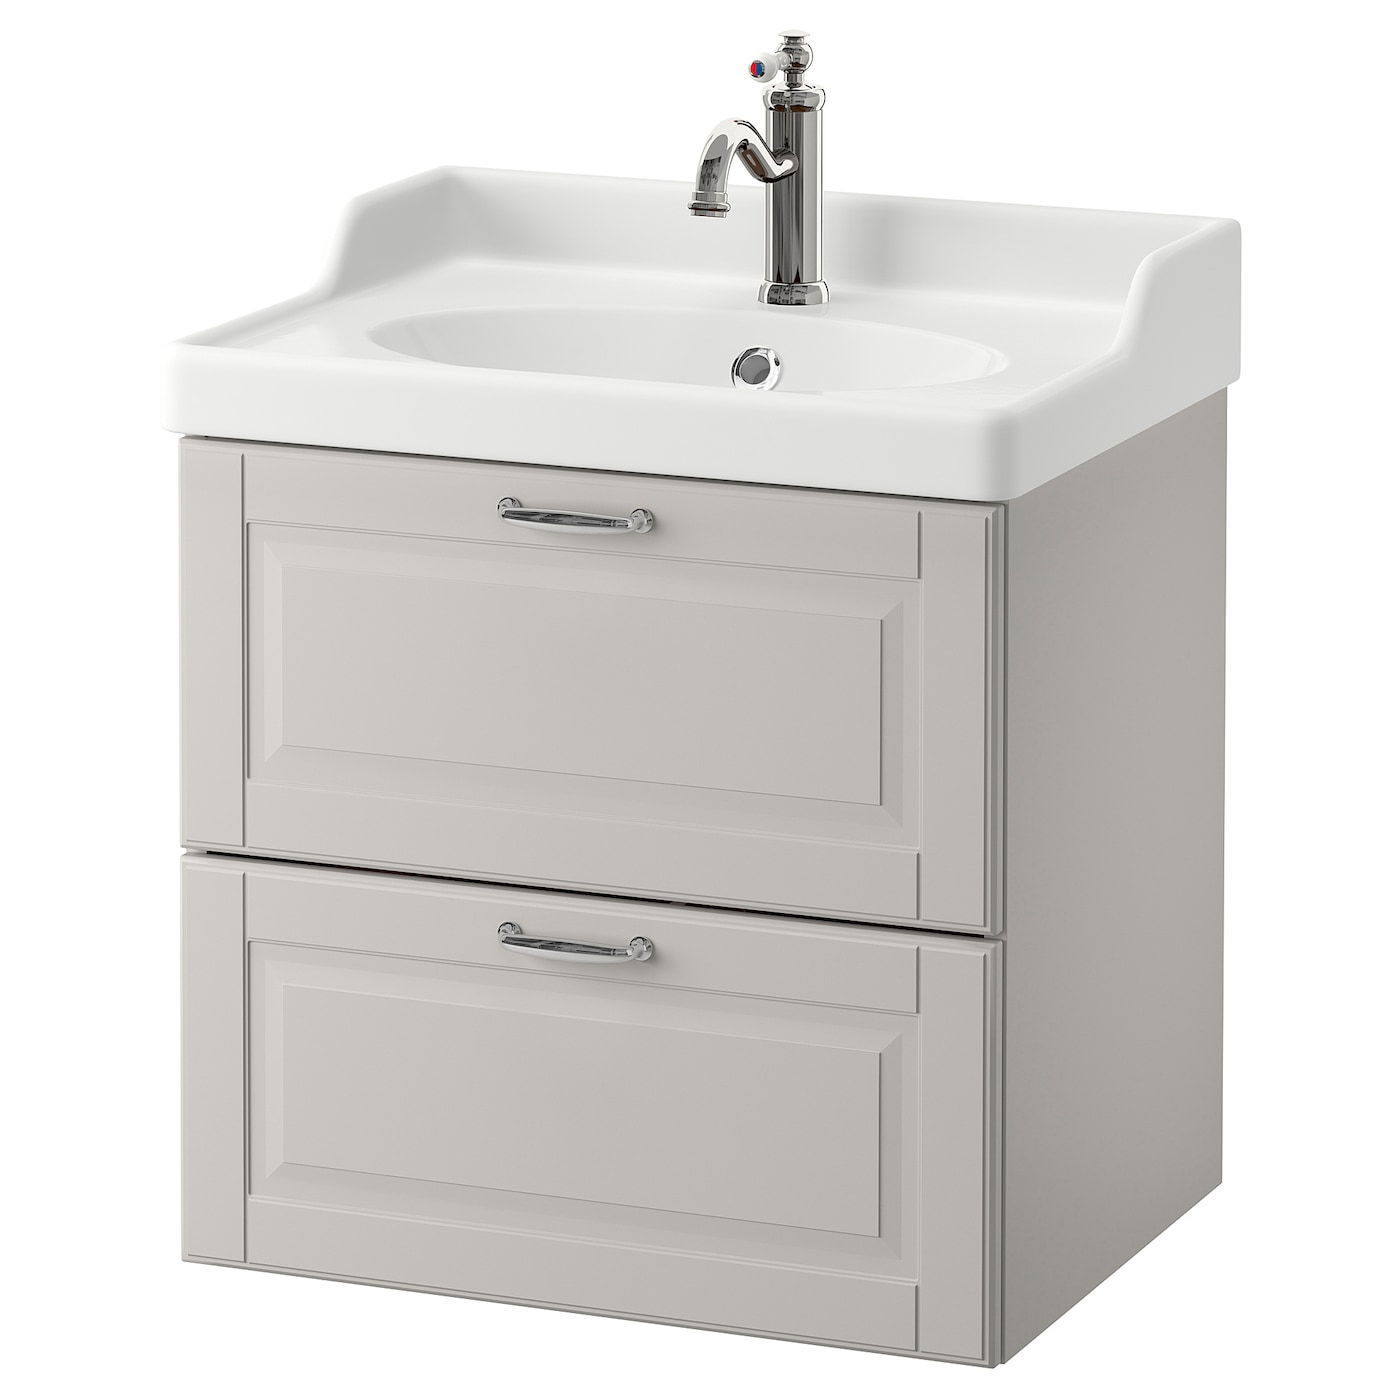 fixtures cabinet kitchen bathroom amazon b sink ac com bath vanities